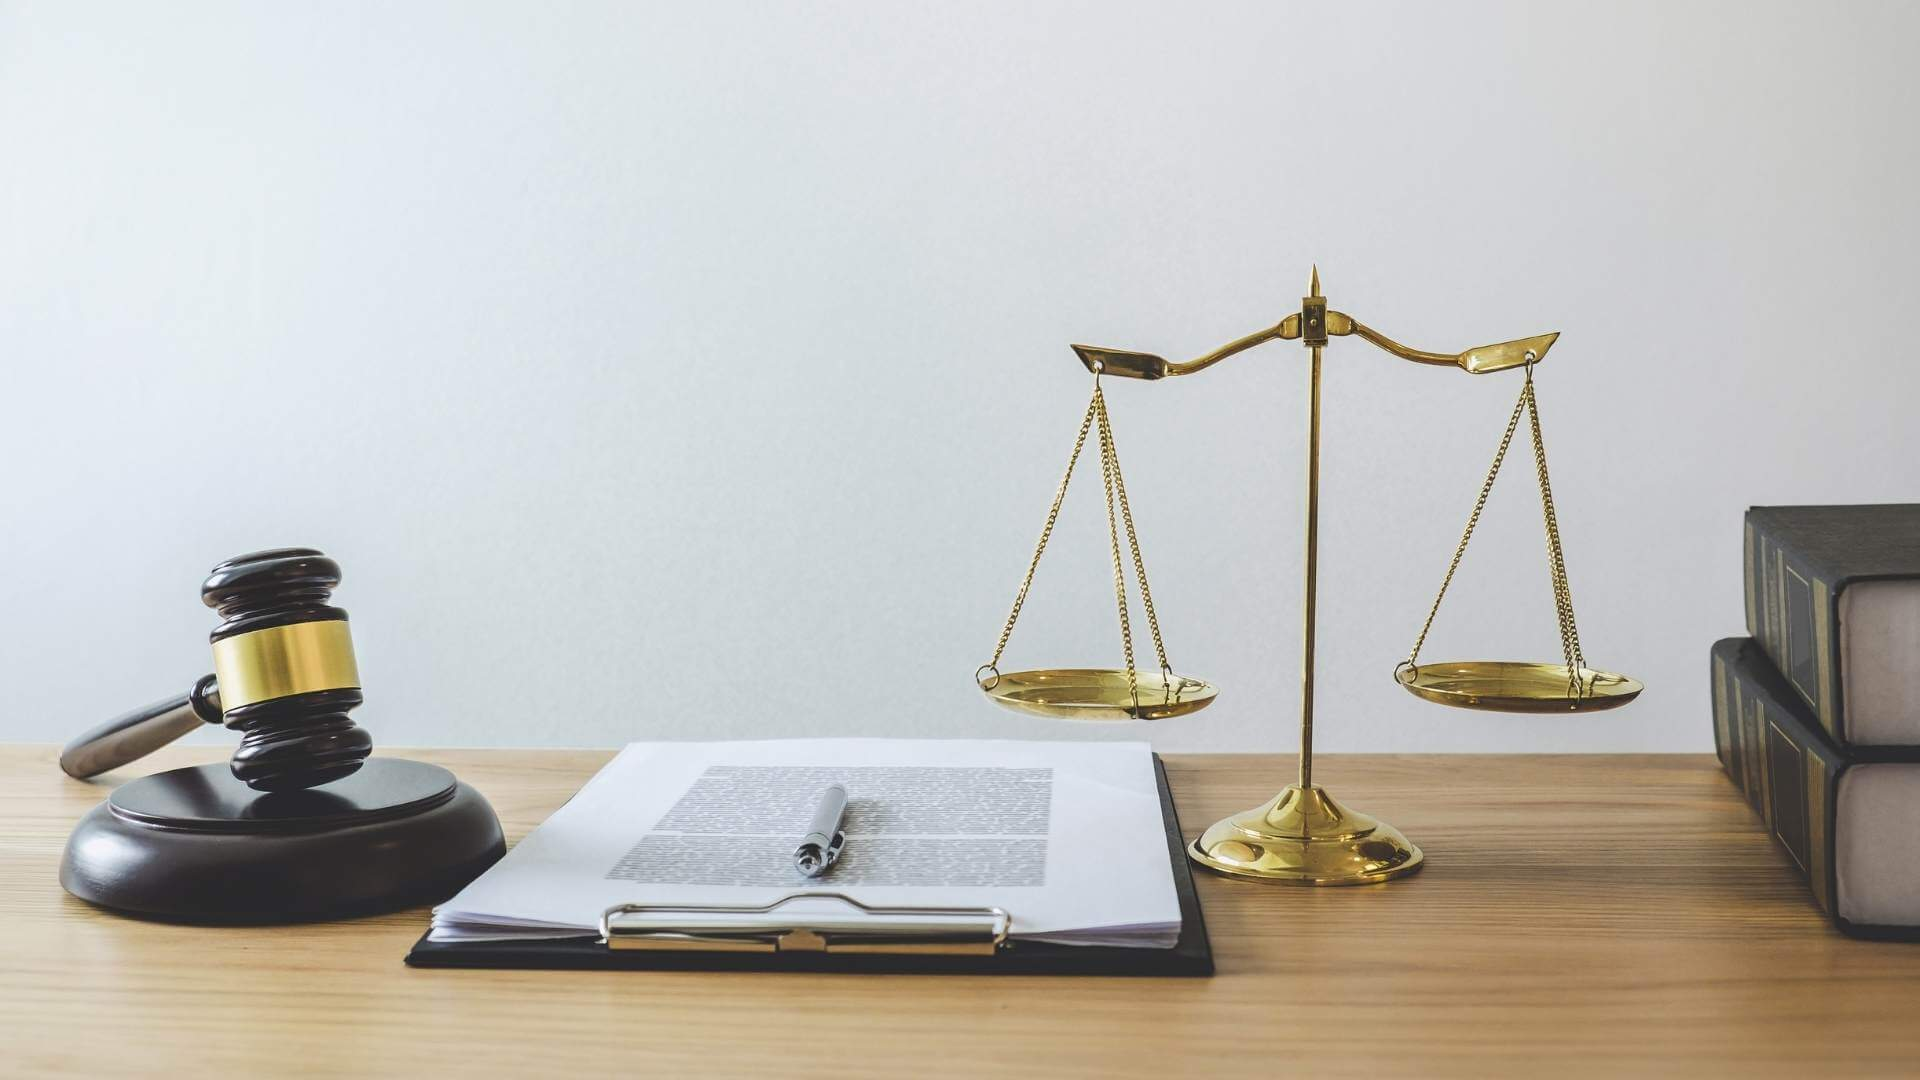 How historic legislation can make IPT compliance complicated